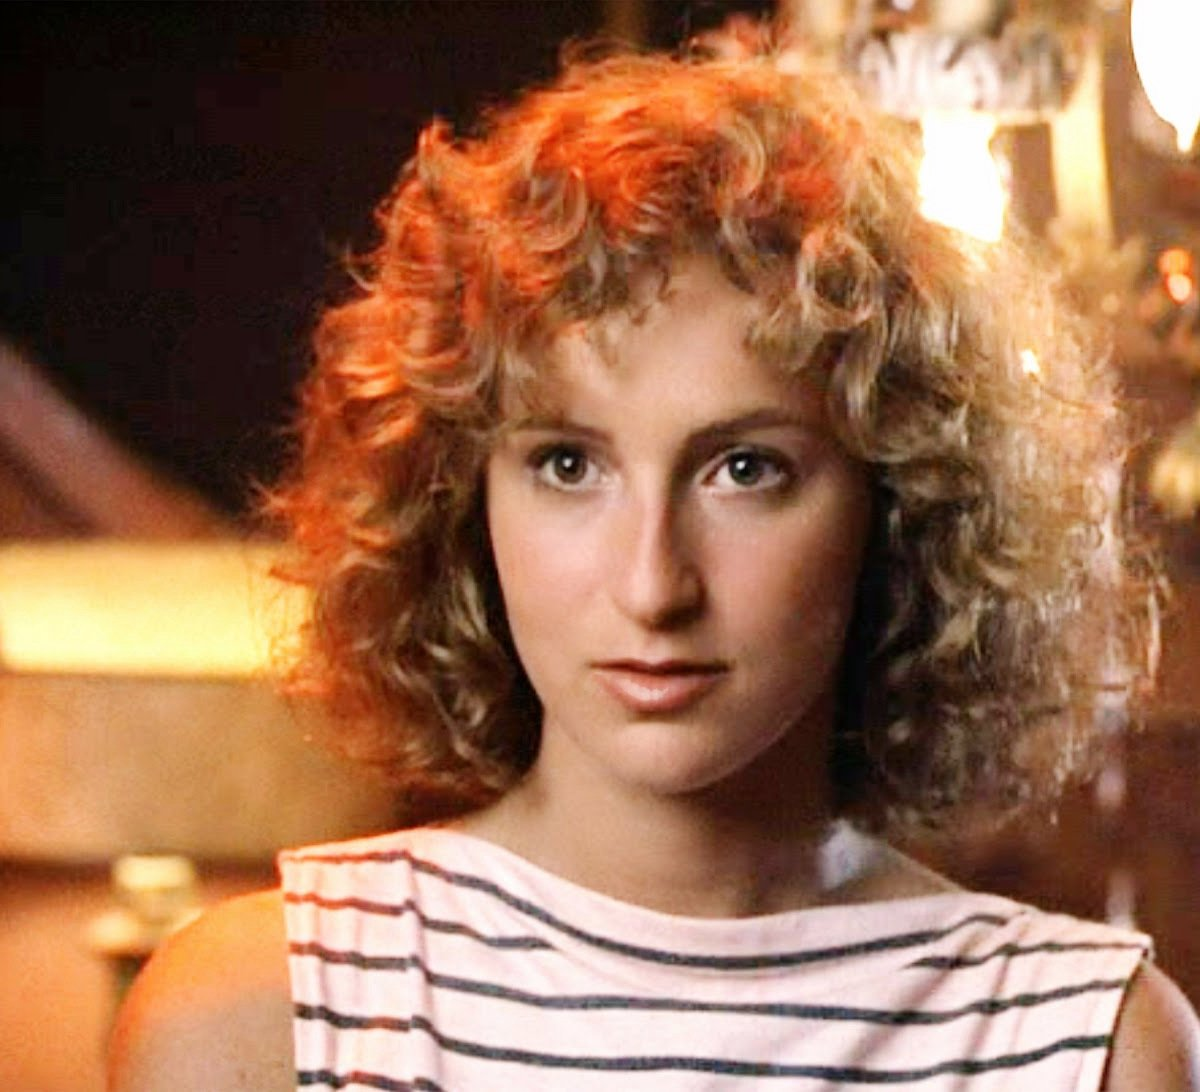 jennifer grey dirty dancing A Nightmare On Elm Street Is Based On A True Story, And More You Never Knew About The Film